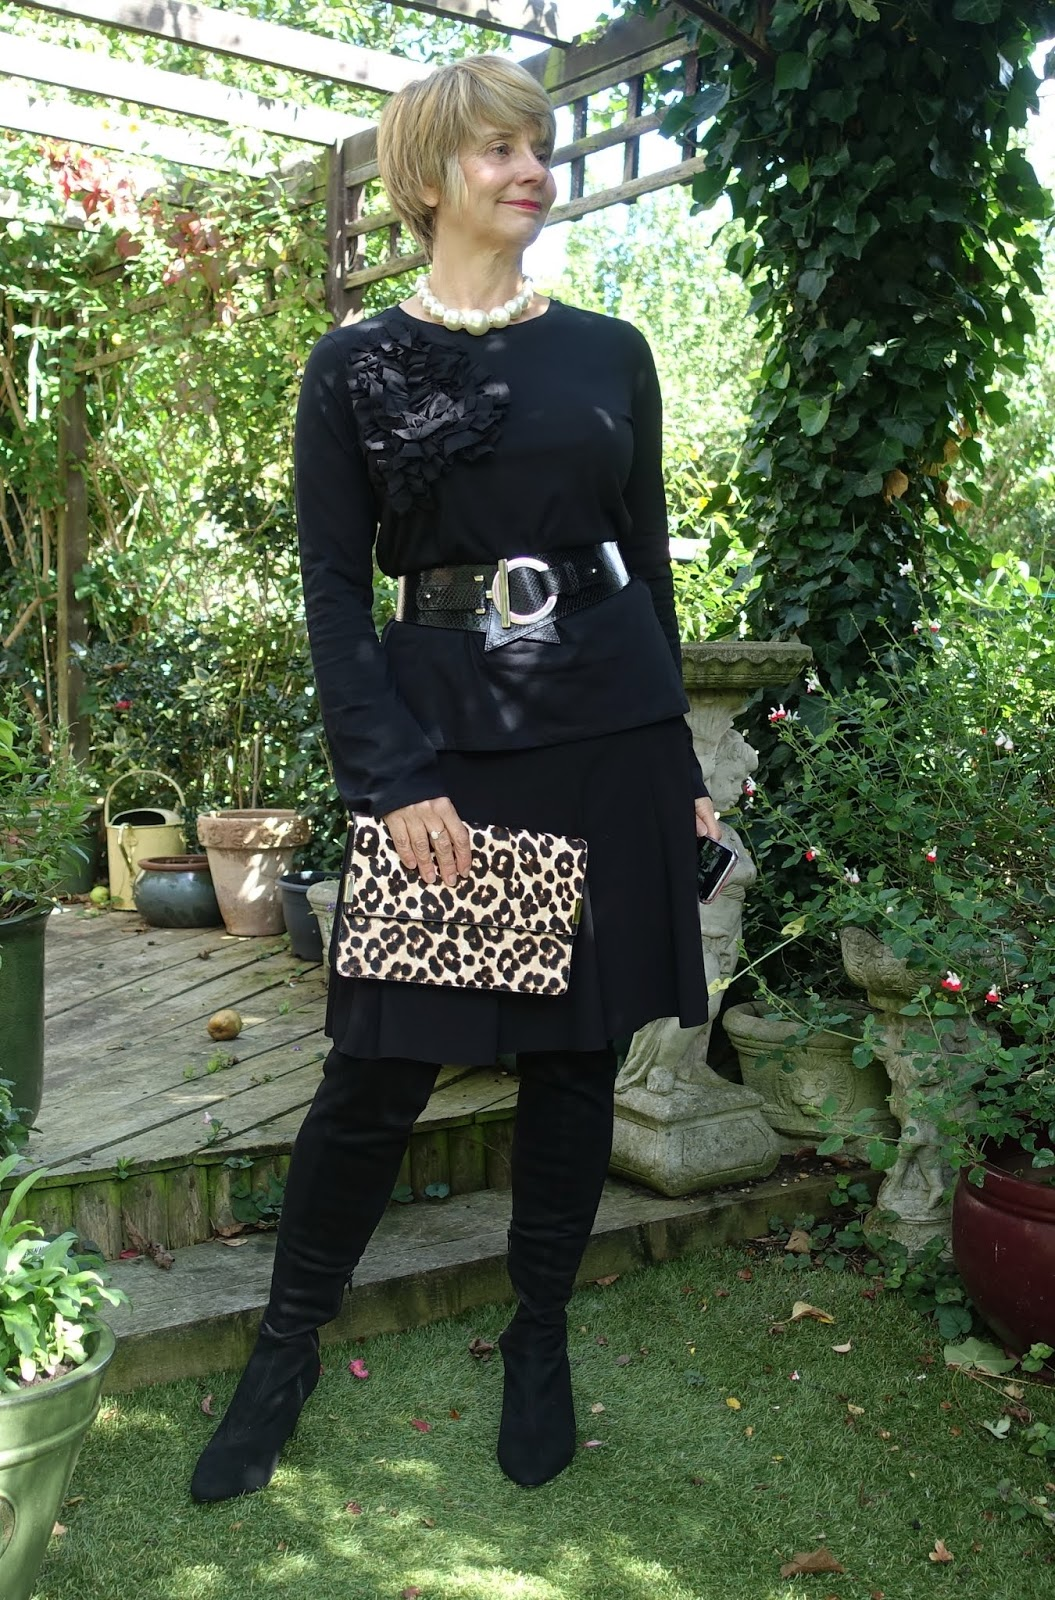 Image showing an over 45 woman showing how to add great accessories to a plain black outfit